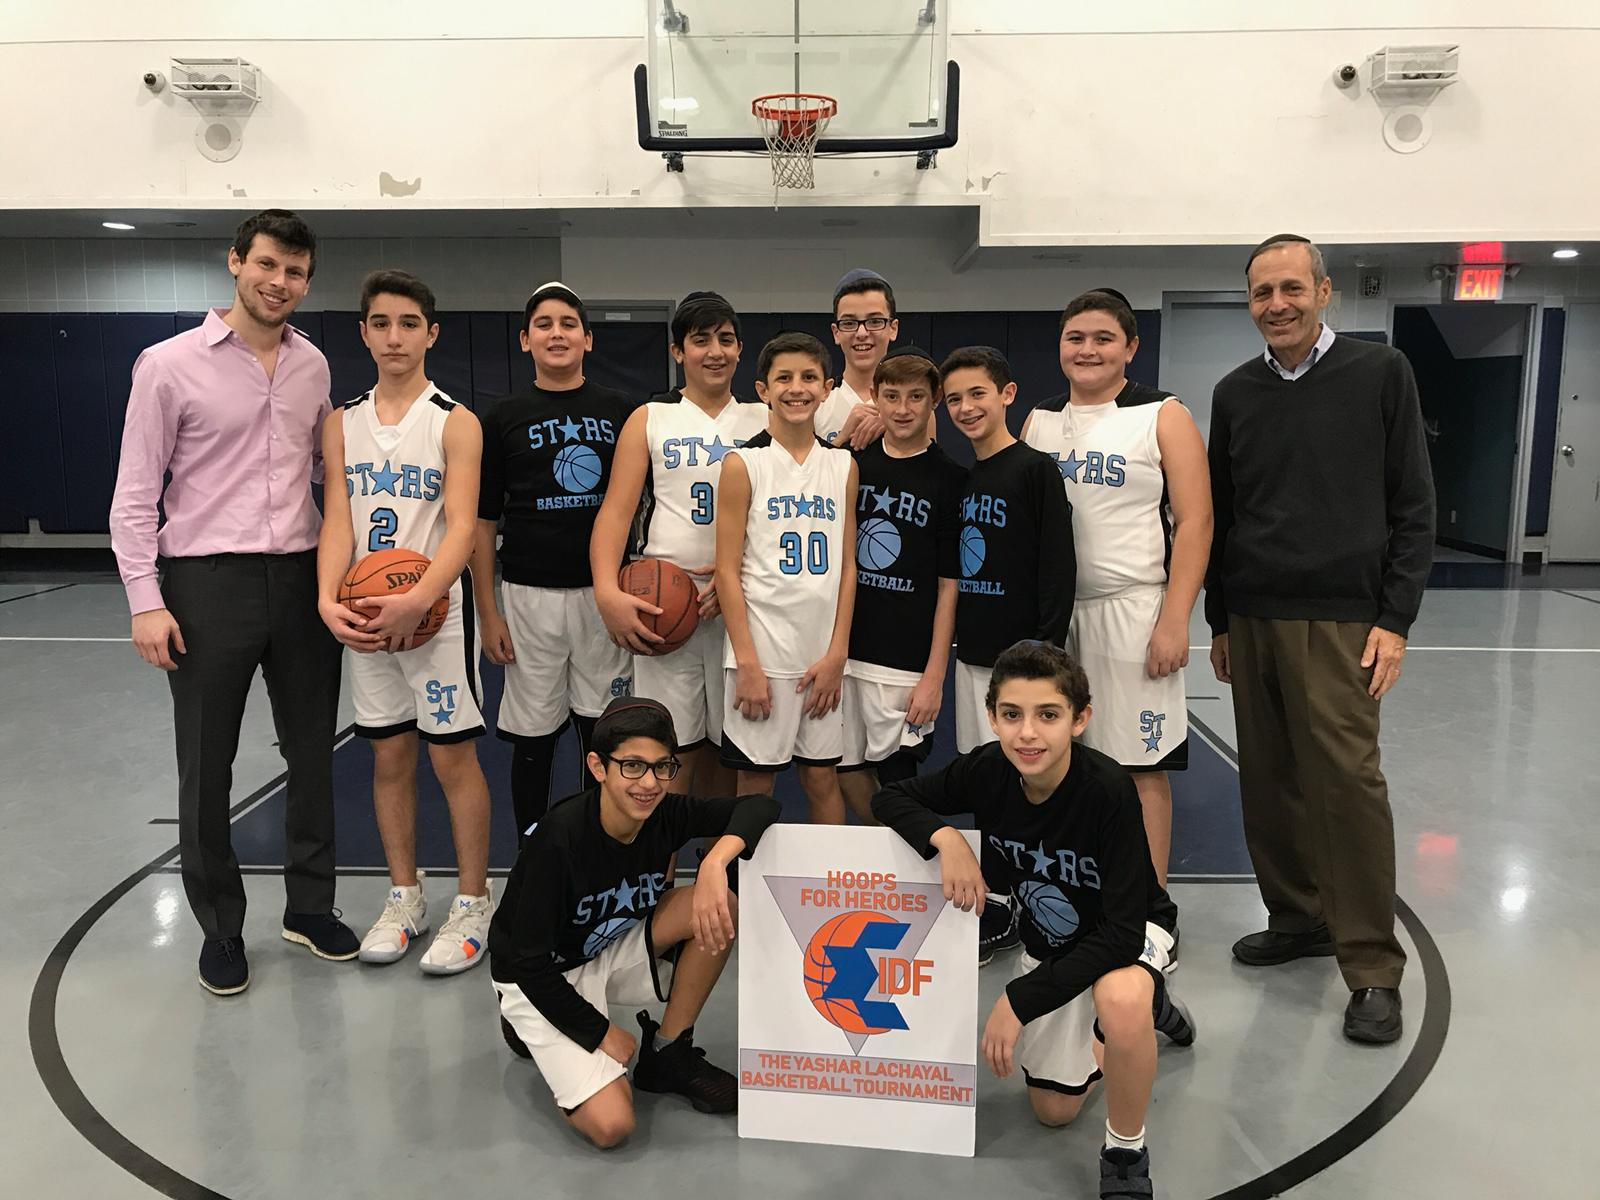 Yeshiva Shaare Torah joined together to play basketball and support IDF soldiers